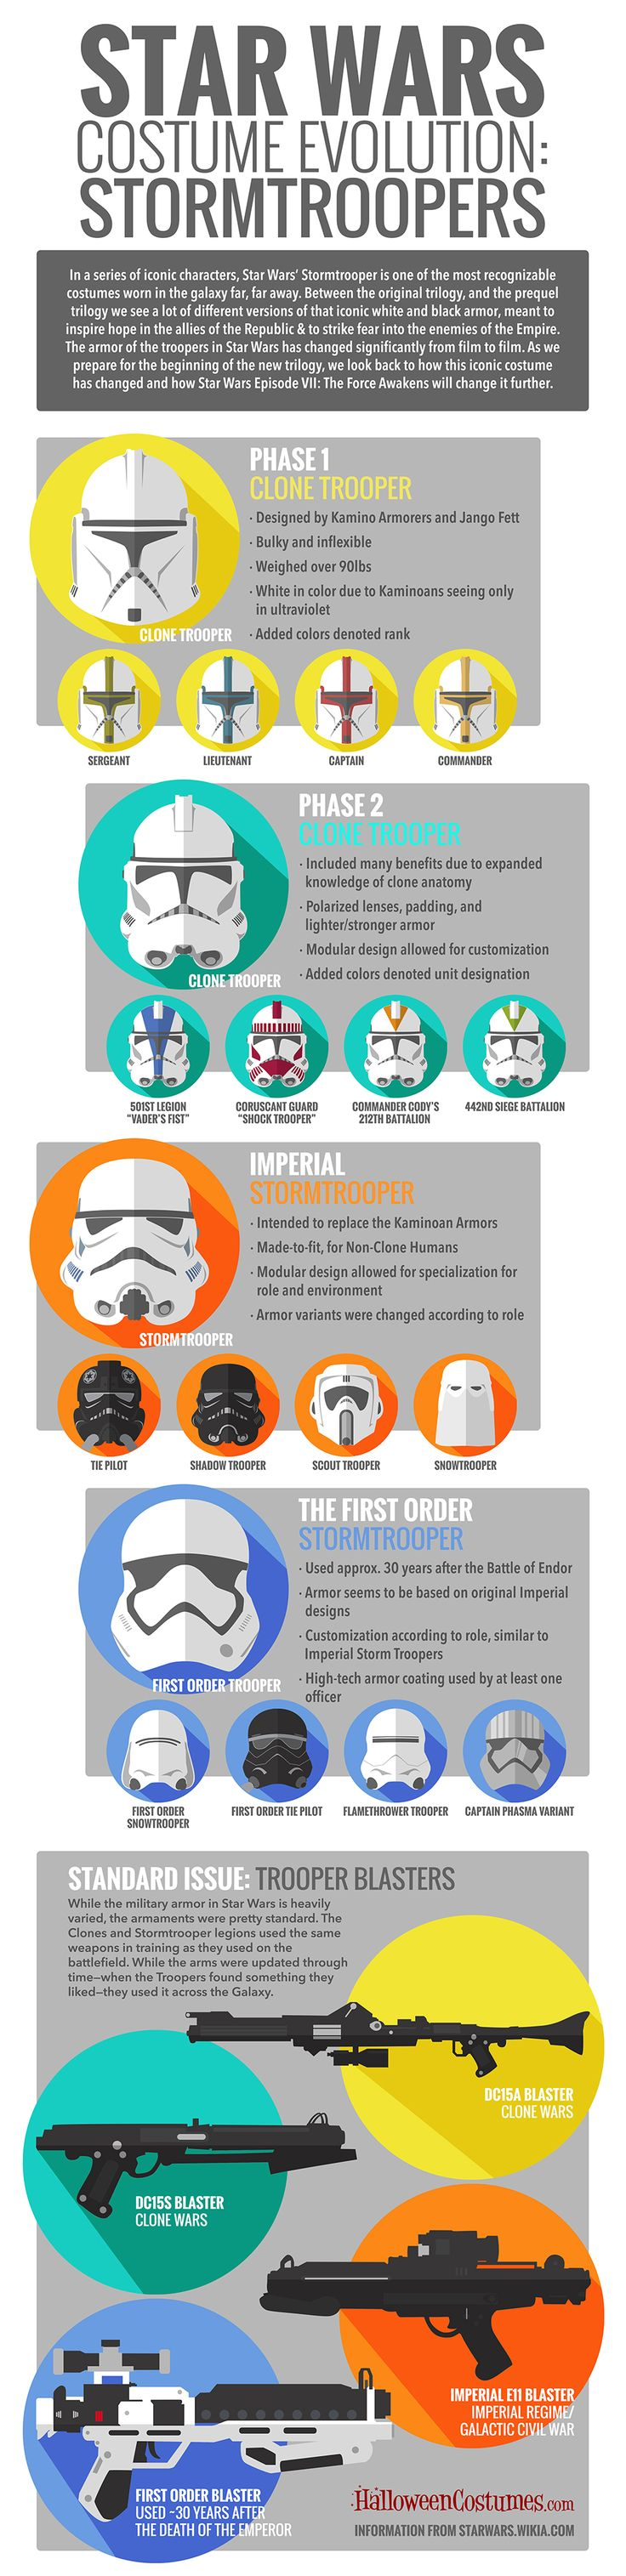 Star Wars Costume Evolution Stormtrooper #infographic #StarWars #Entertainment #infografía